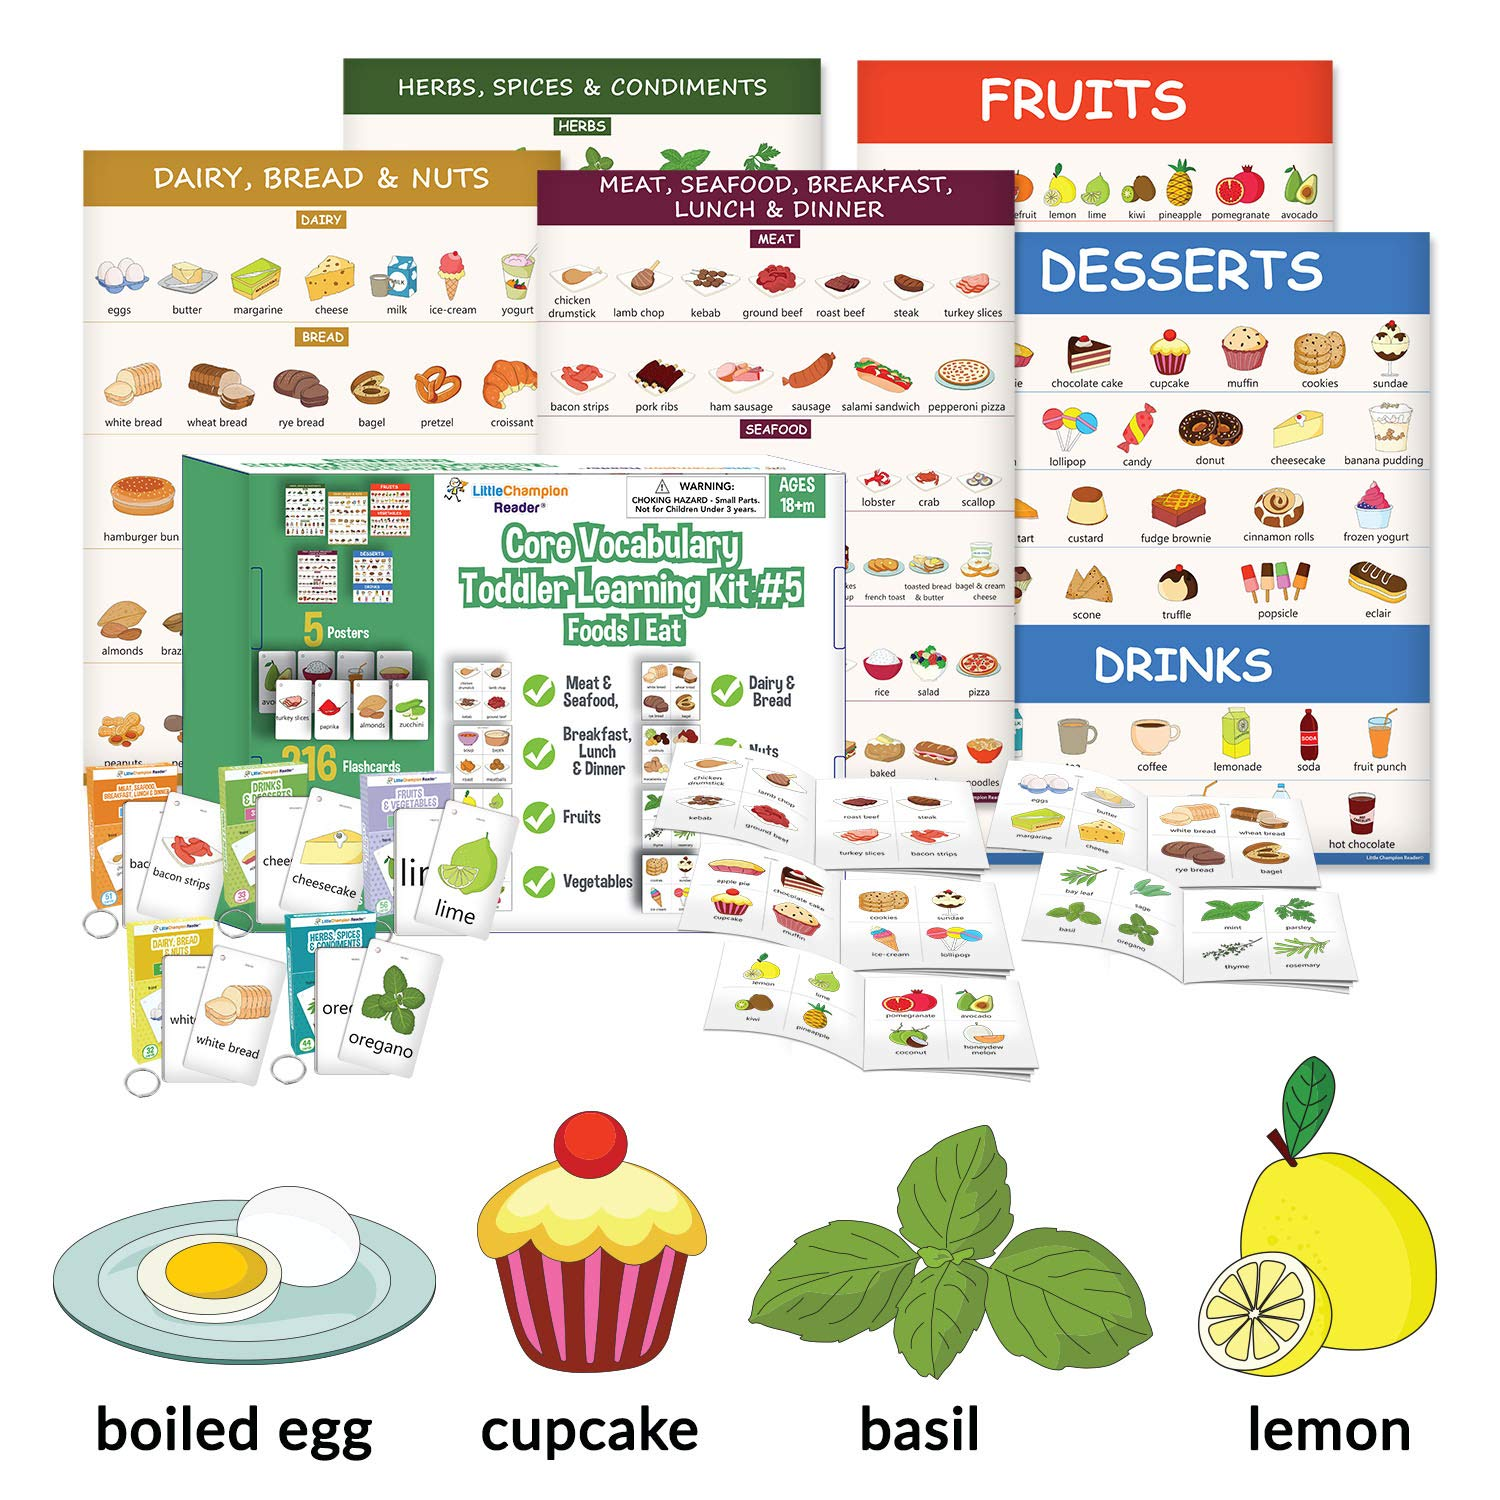 Little Champion Reader Teach Core Vocabulary Toddler Learning Kit 4 (Common Food) - Meals, Fruits & Vegetables, Dairy, Bread, Nuts, Herbs & Spices, Drinks & Desserts